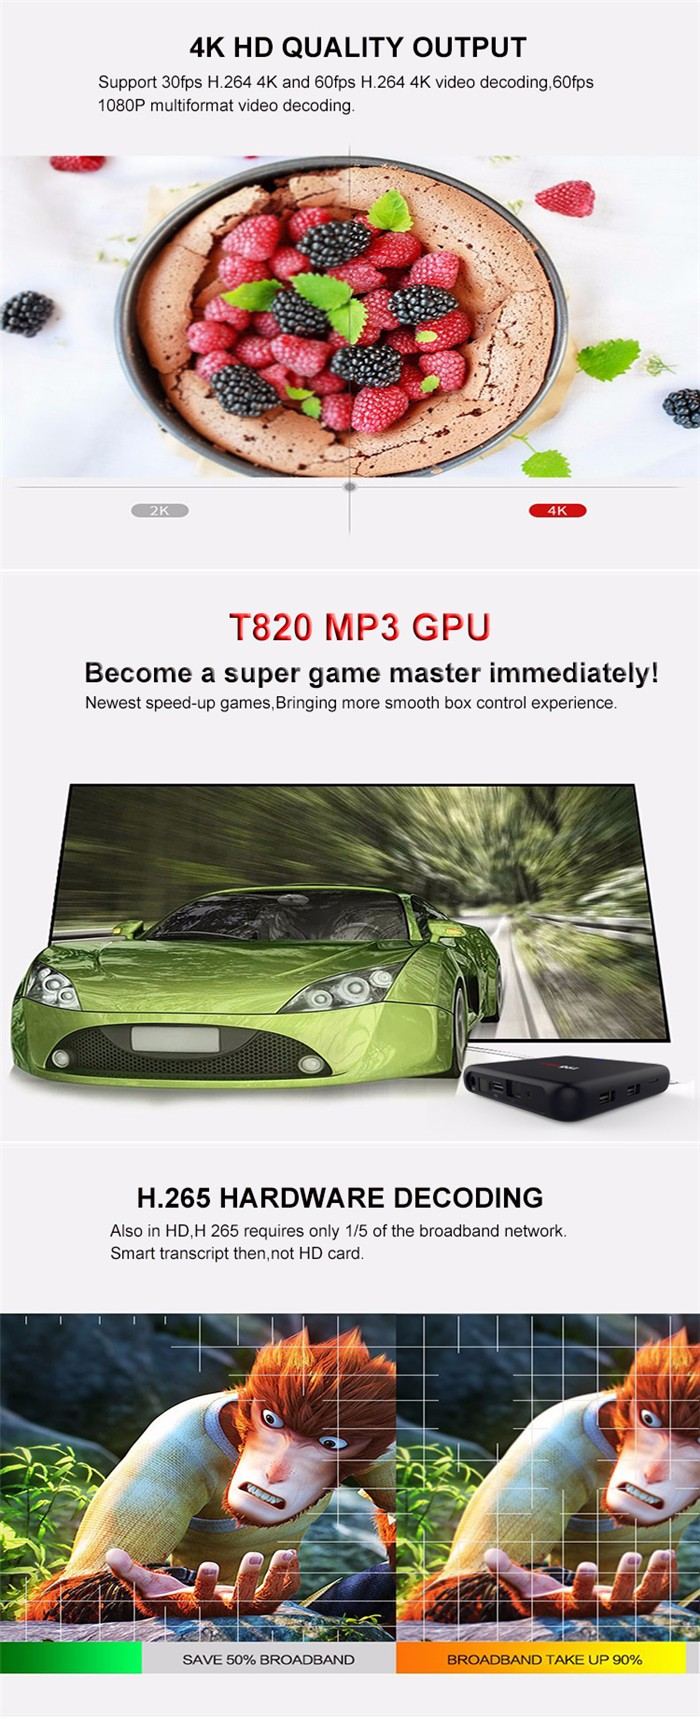 T96 PLUS S912 3G+16G Android 6.0 Marshmallow with Kodi16.1 TV Box Touch Power Button with Circuit Breathing Lamp